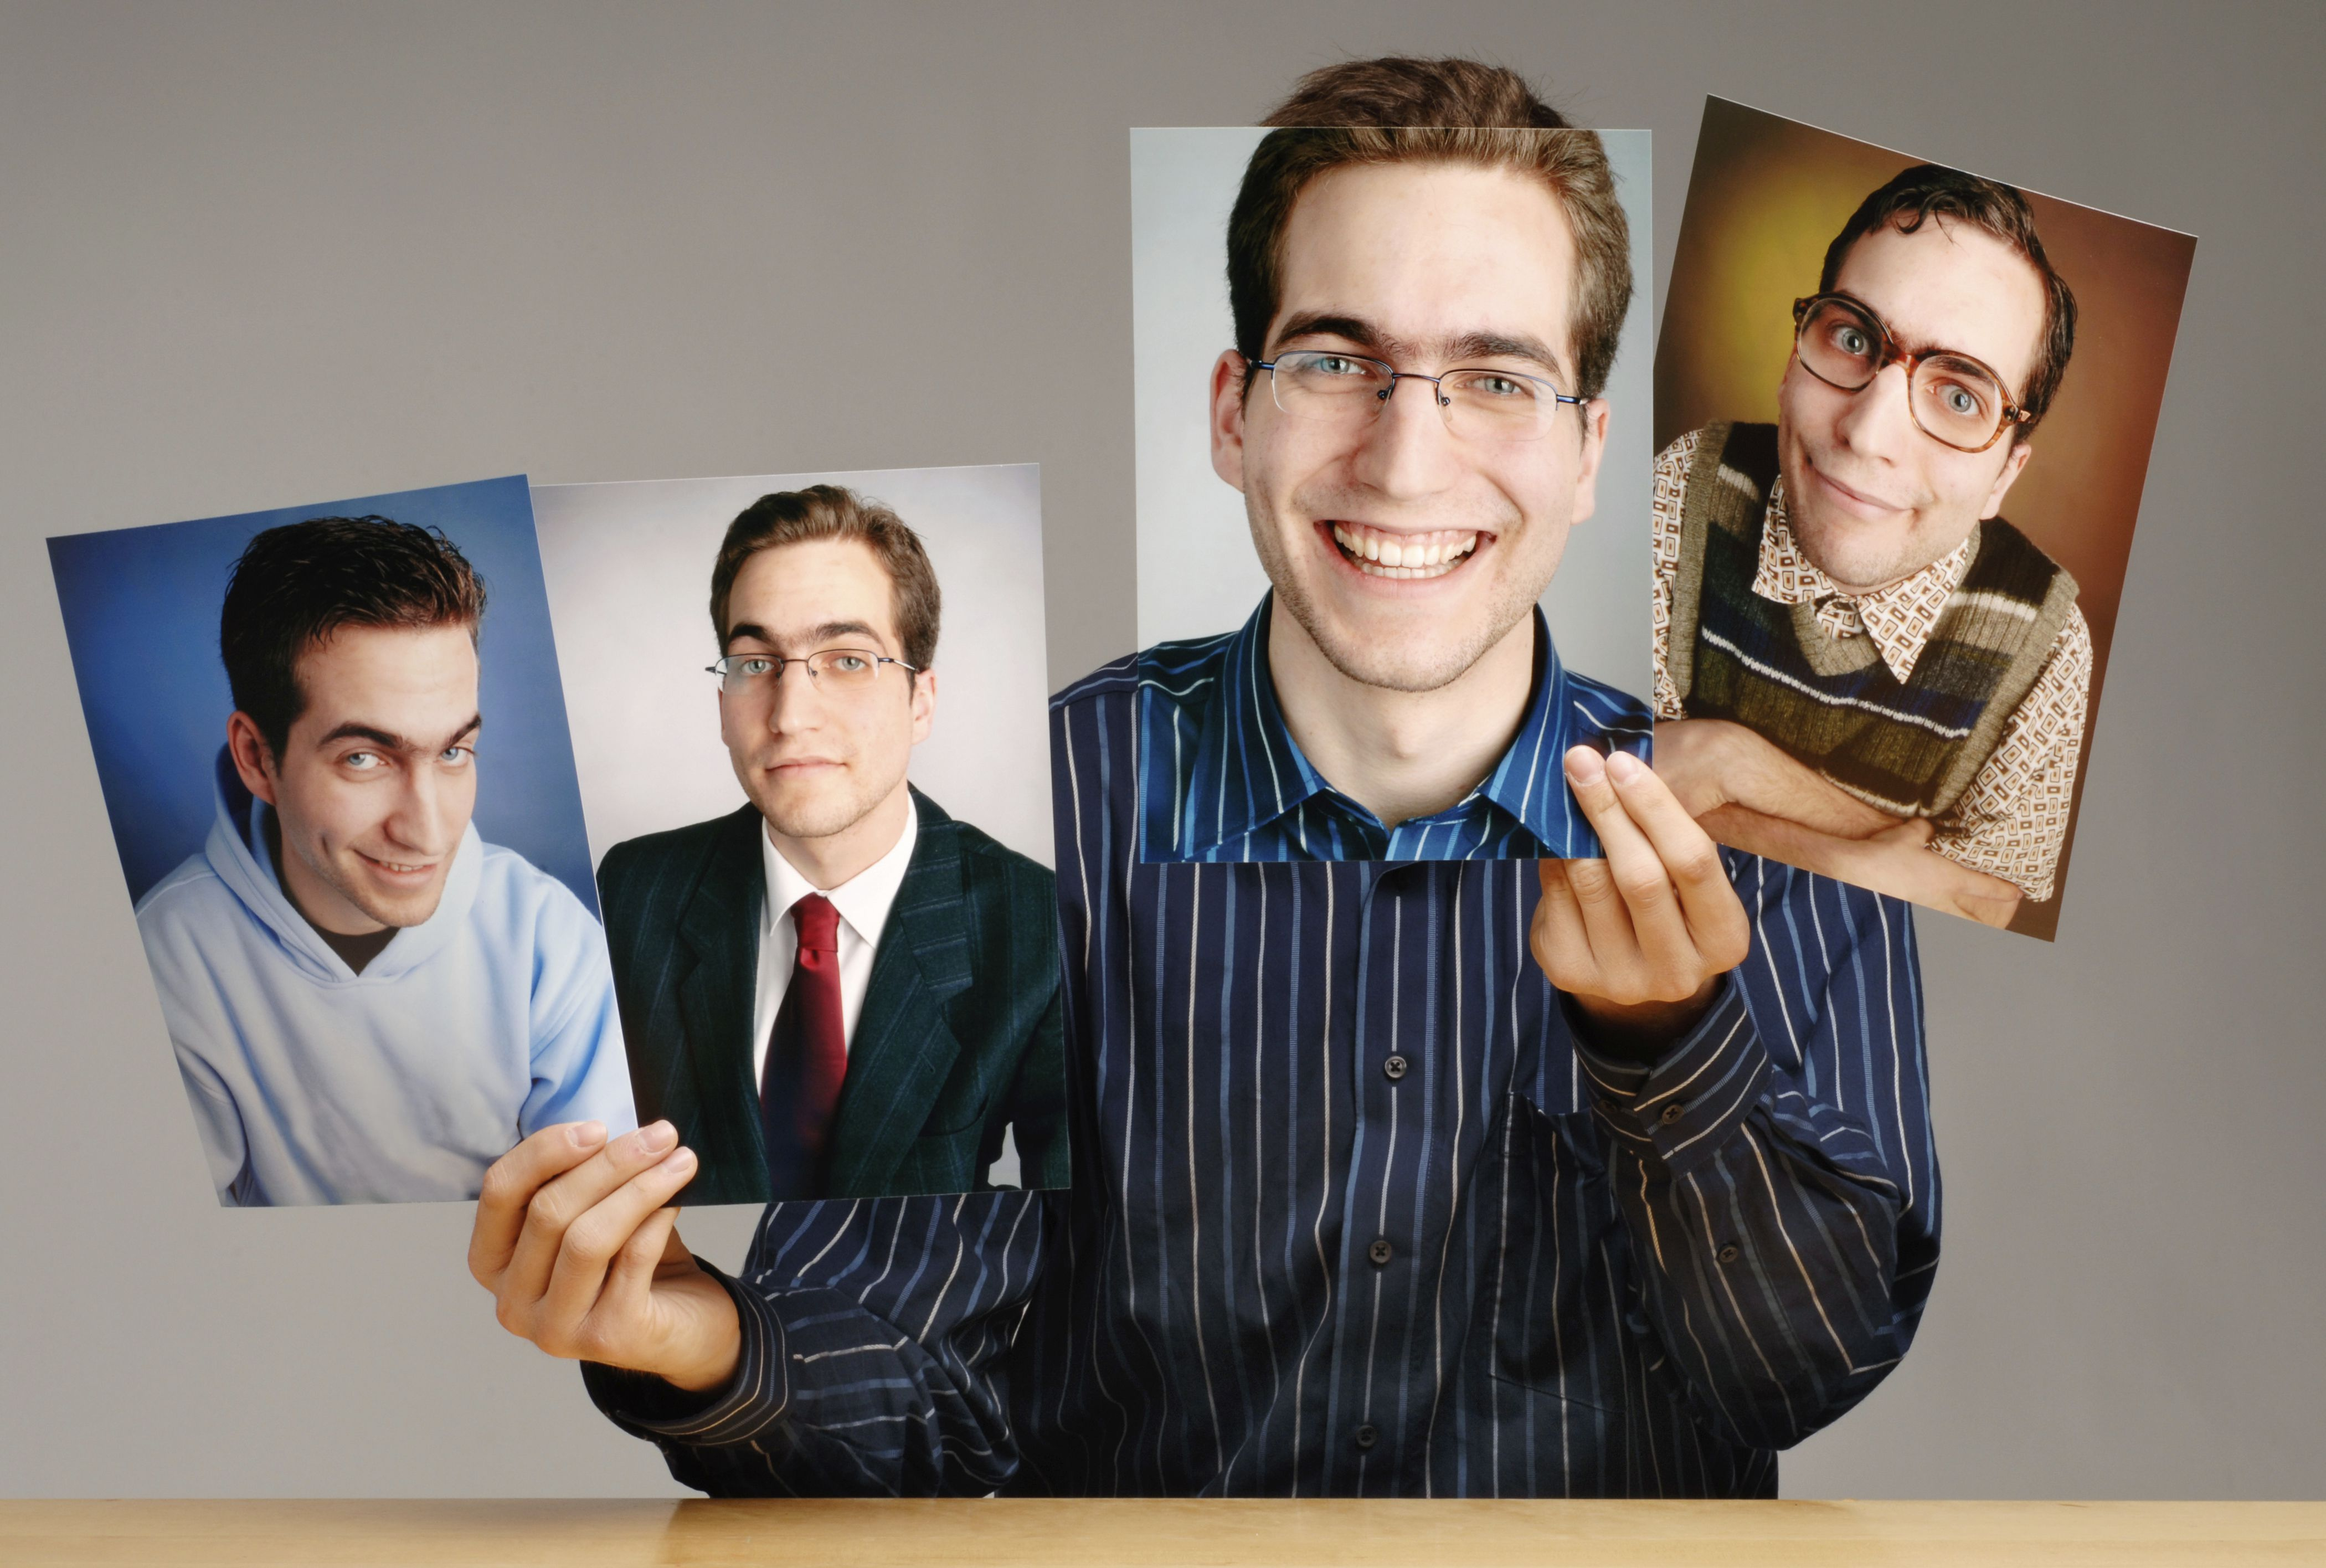 Man holding up photos of himself with different facial expressions